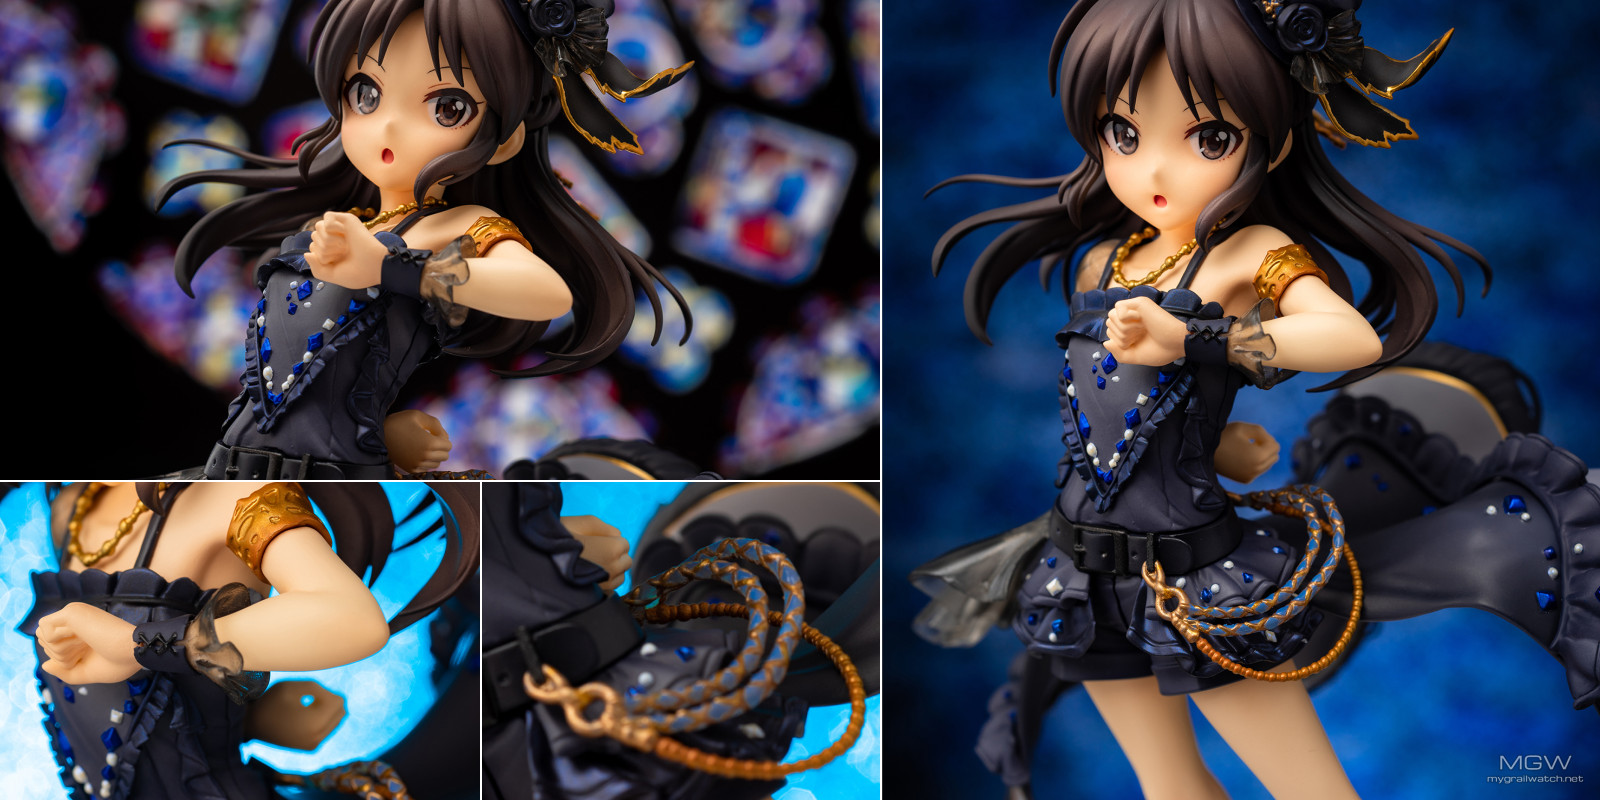 Tachibana Arisu Only My Flag by PLUM from THE iDOLM@STER Cinderella Girls